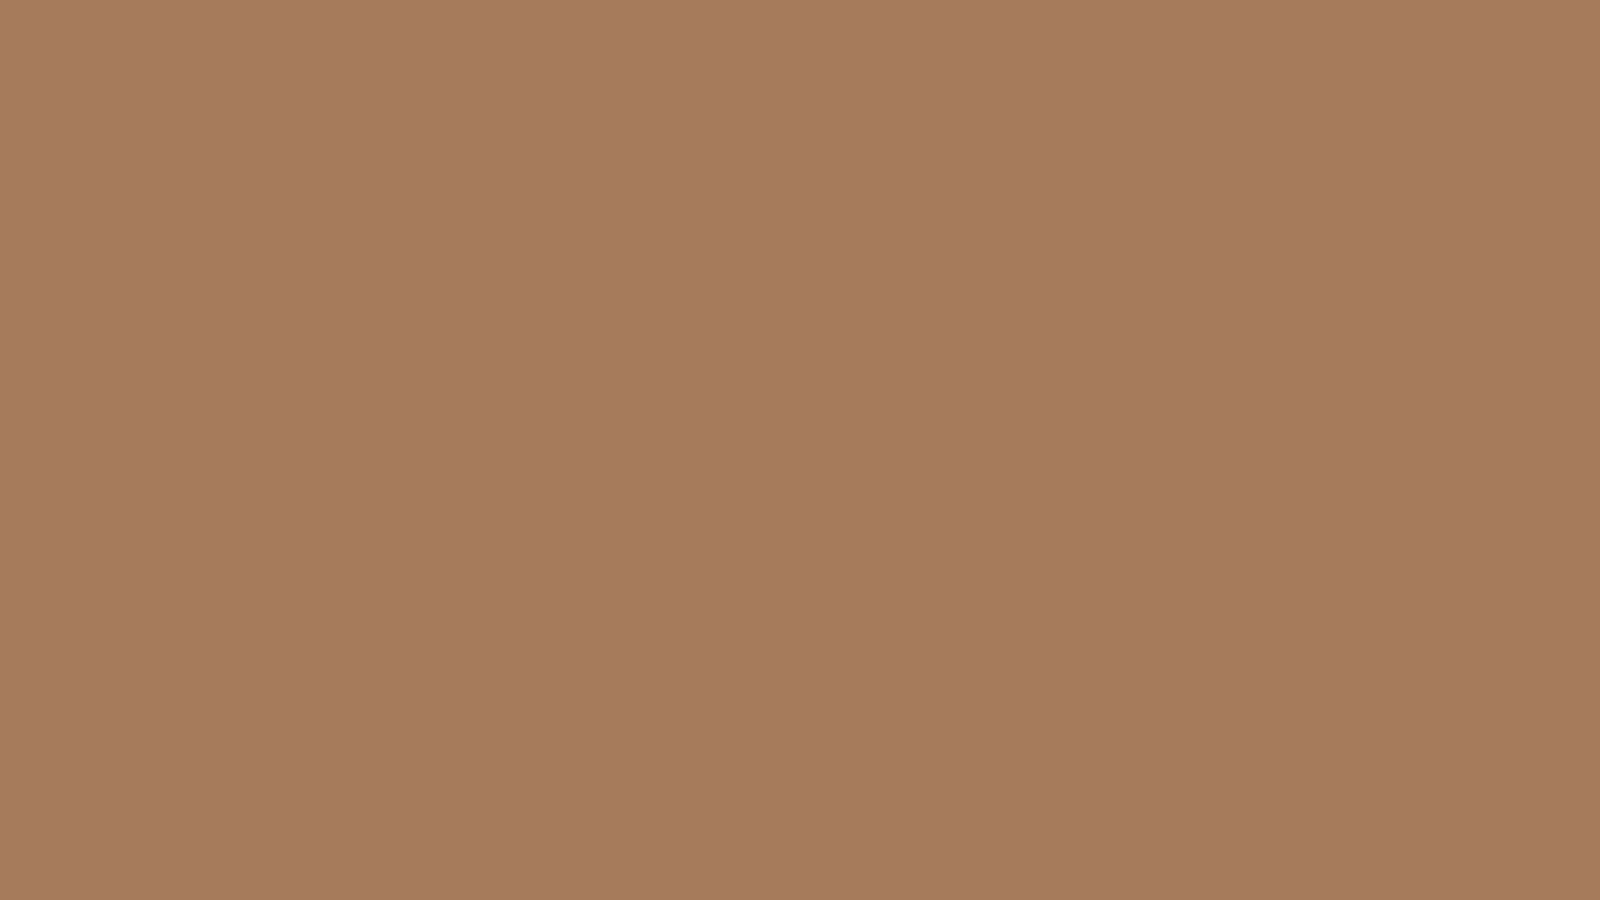 1600x900 Tuscan Tan Solid Color Background